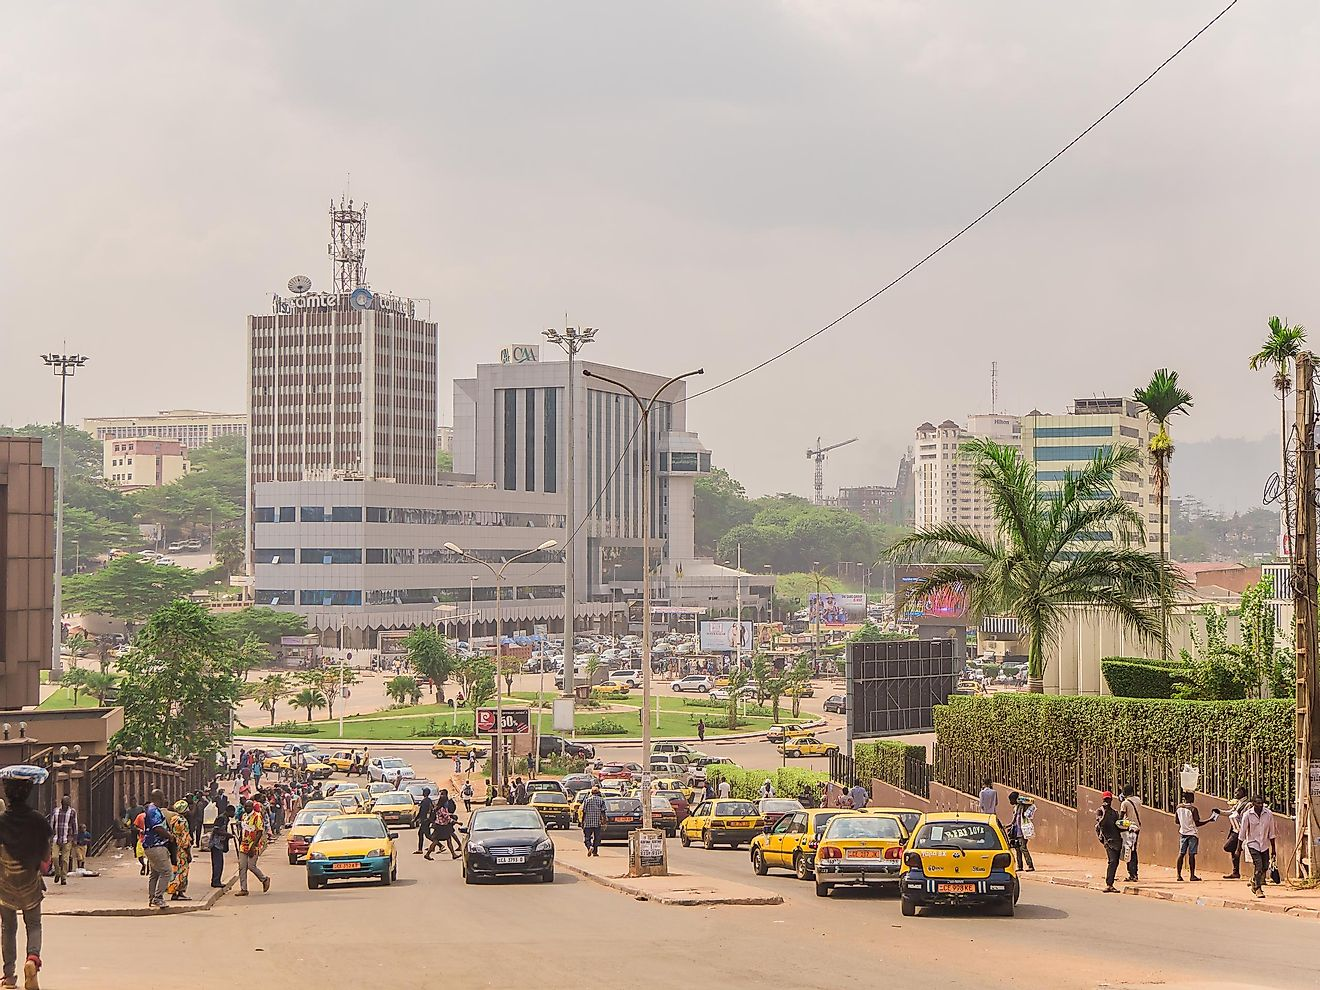 Yaounde is the capital of Cameroon and the second-largest city in the country, right after Douala. Image  credit: cyrilleyonnta / Shutterstock.com